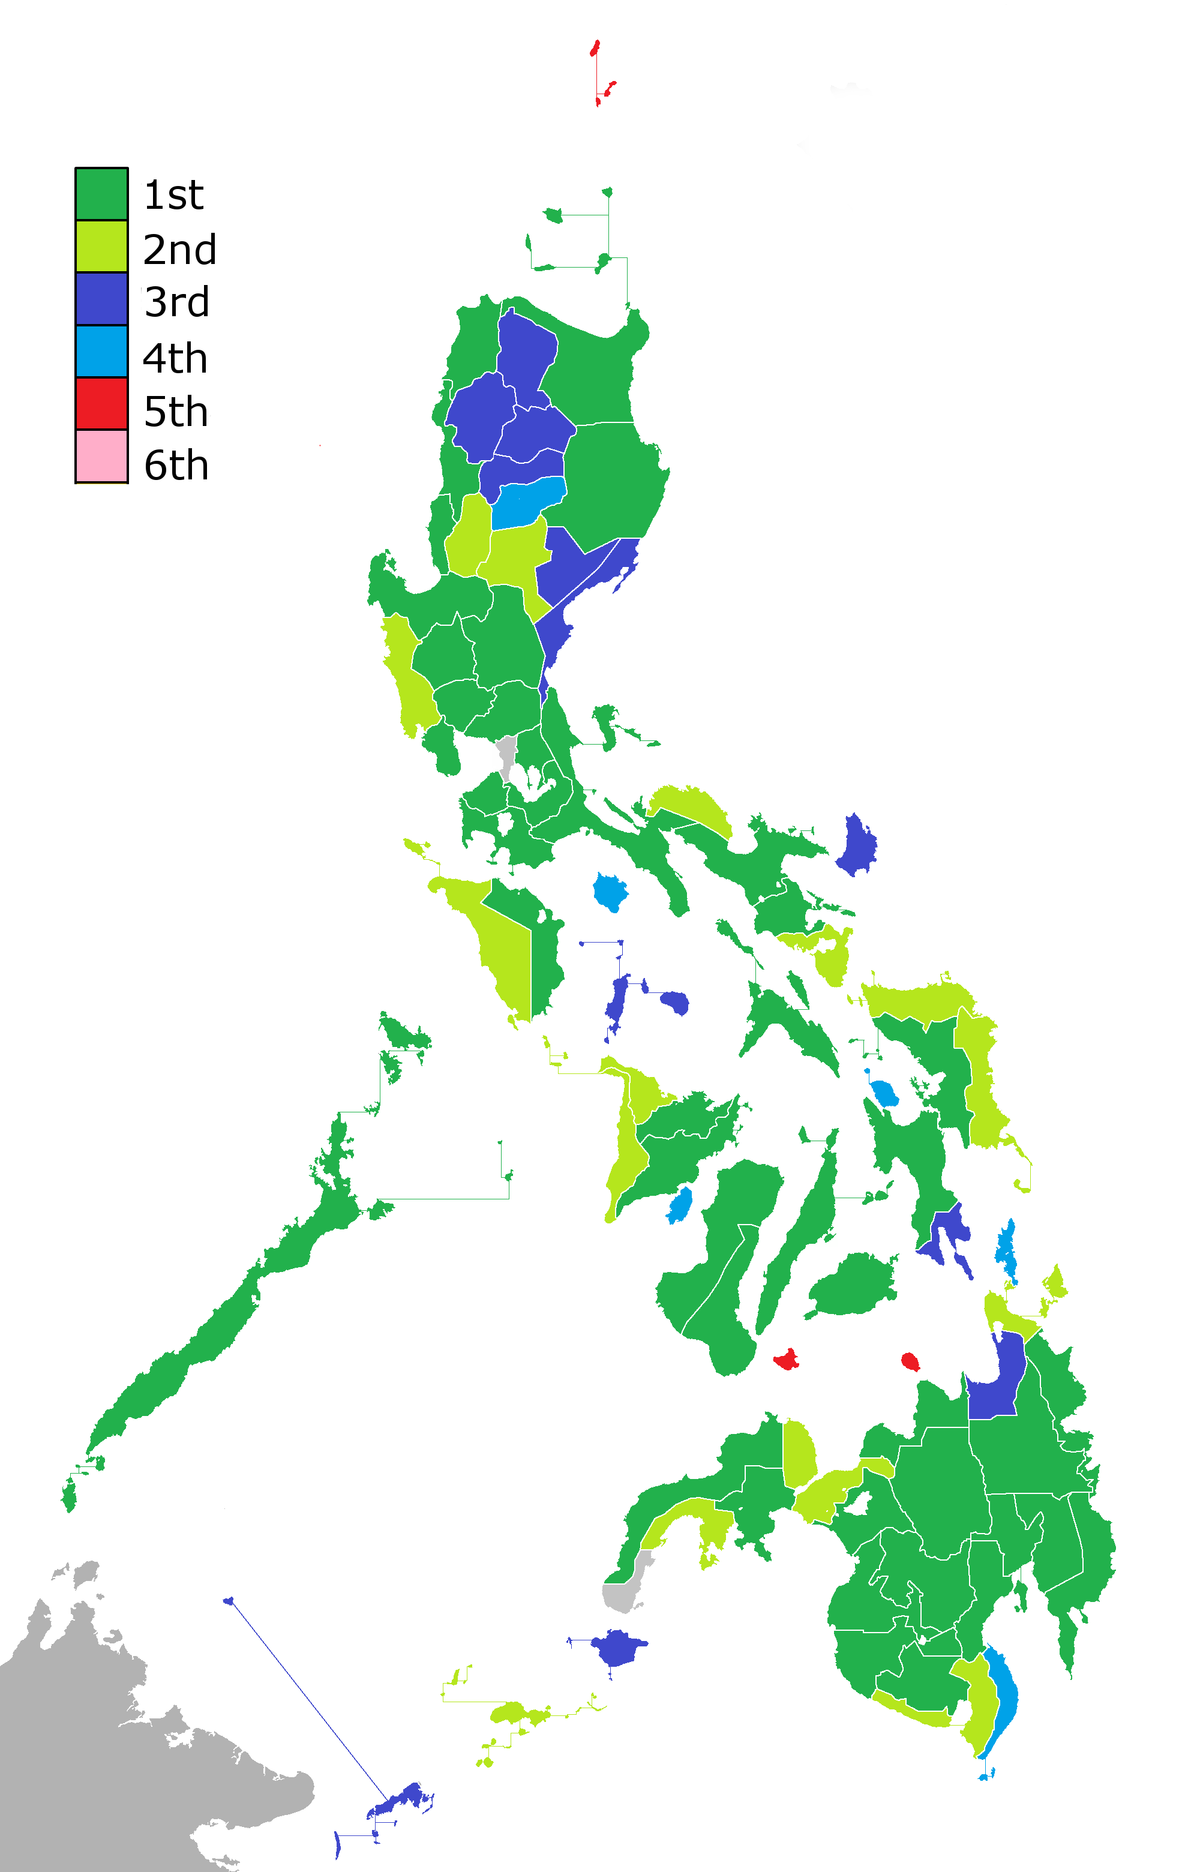 """terrorism provinces of the philippines and Cebu city–the united kingdom has issued a travel advisory against going to southern part of the philippines, including portions of cebu province, due to """" threat of terrorism"""" but local tourism stakeholders here were unfazed, saying cebu had always been a safe place to visit and the government was in."""